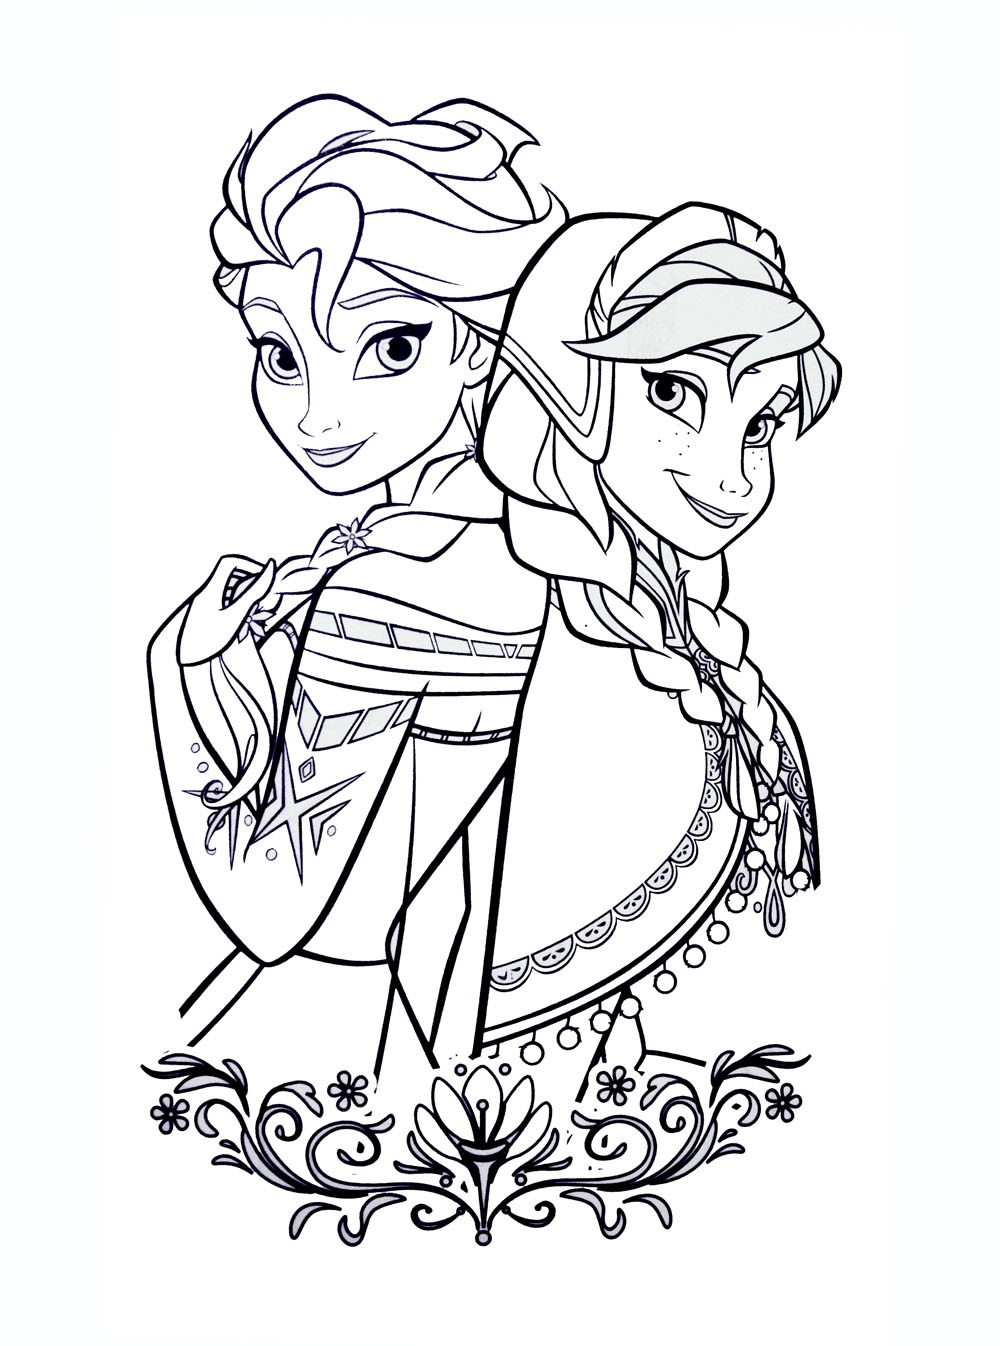 frozen free to color for kids frozen kids coloring pages